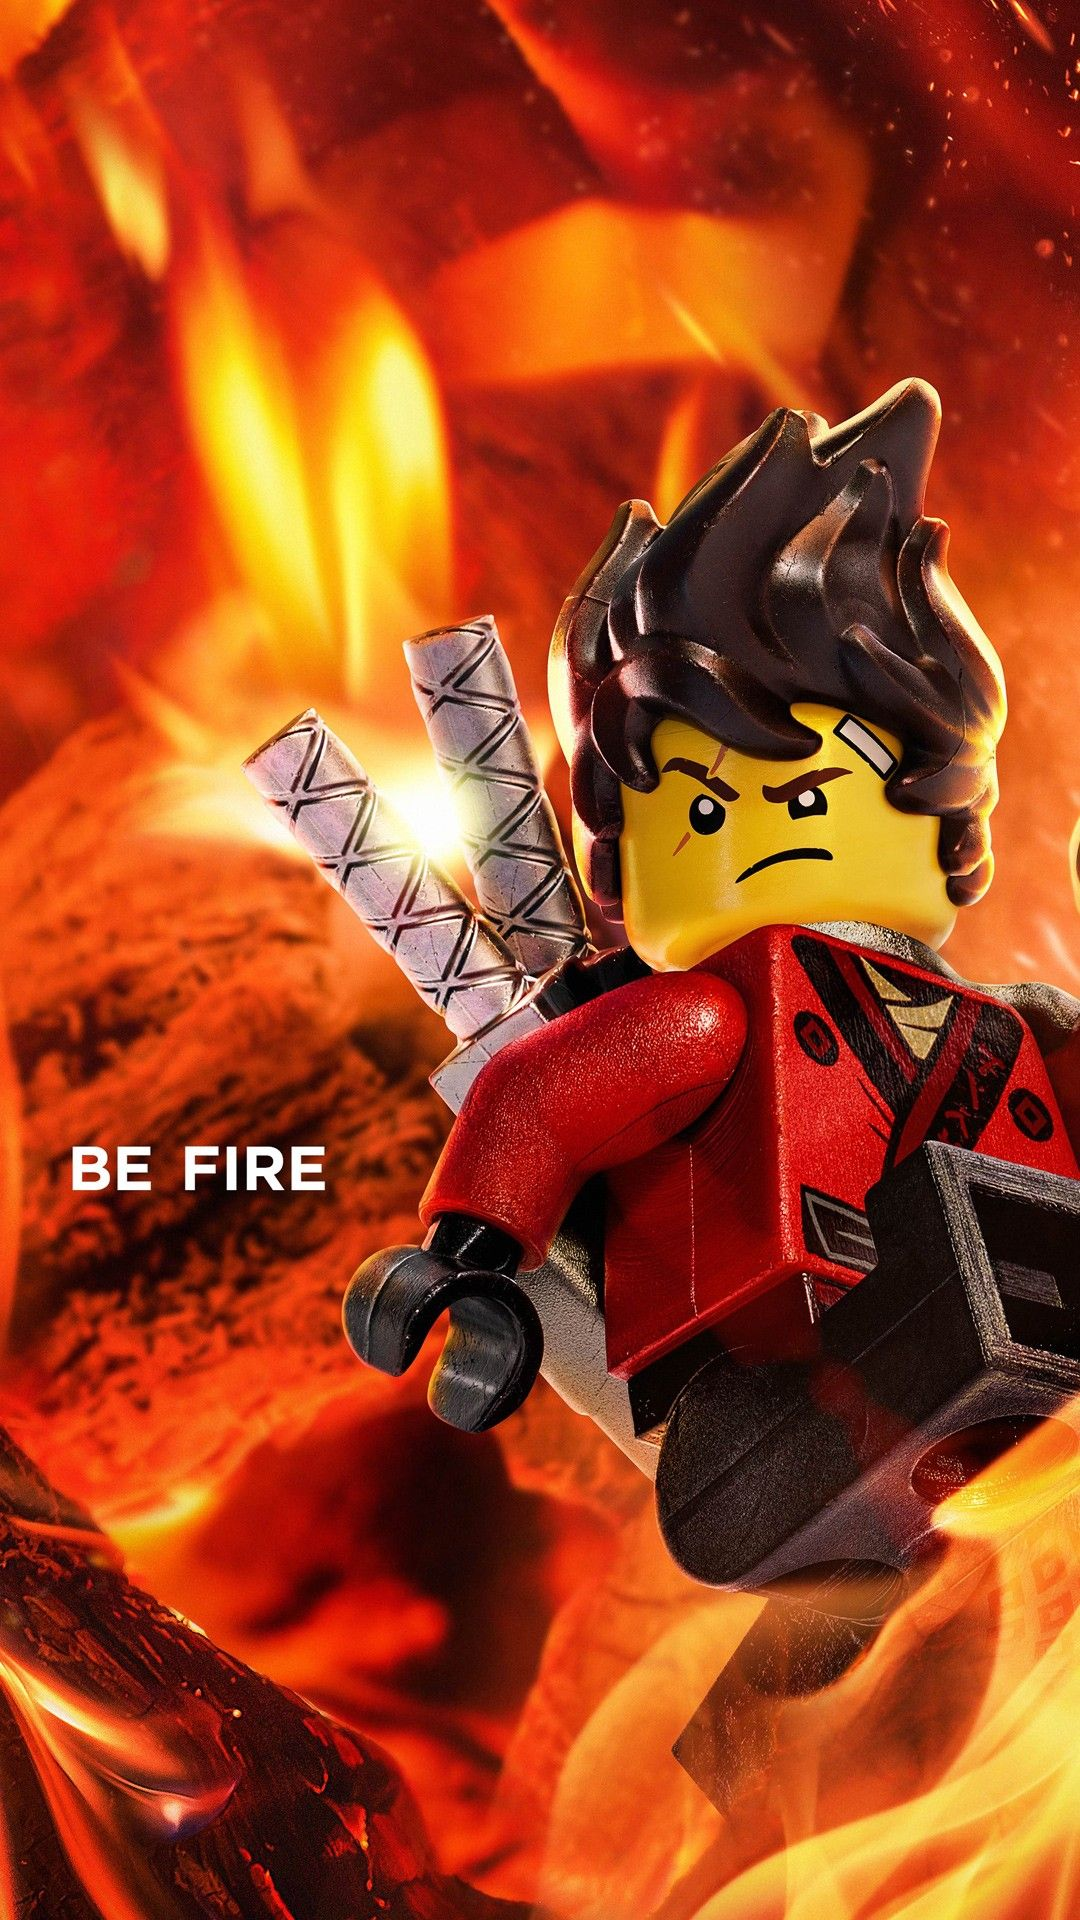 1080x1920 Kai Be Fire The Lego Ninjago Movie 2017 Wallpapers | HD Wallpapers ...